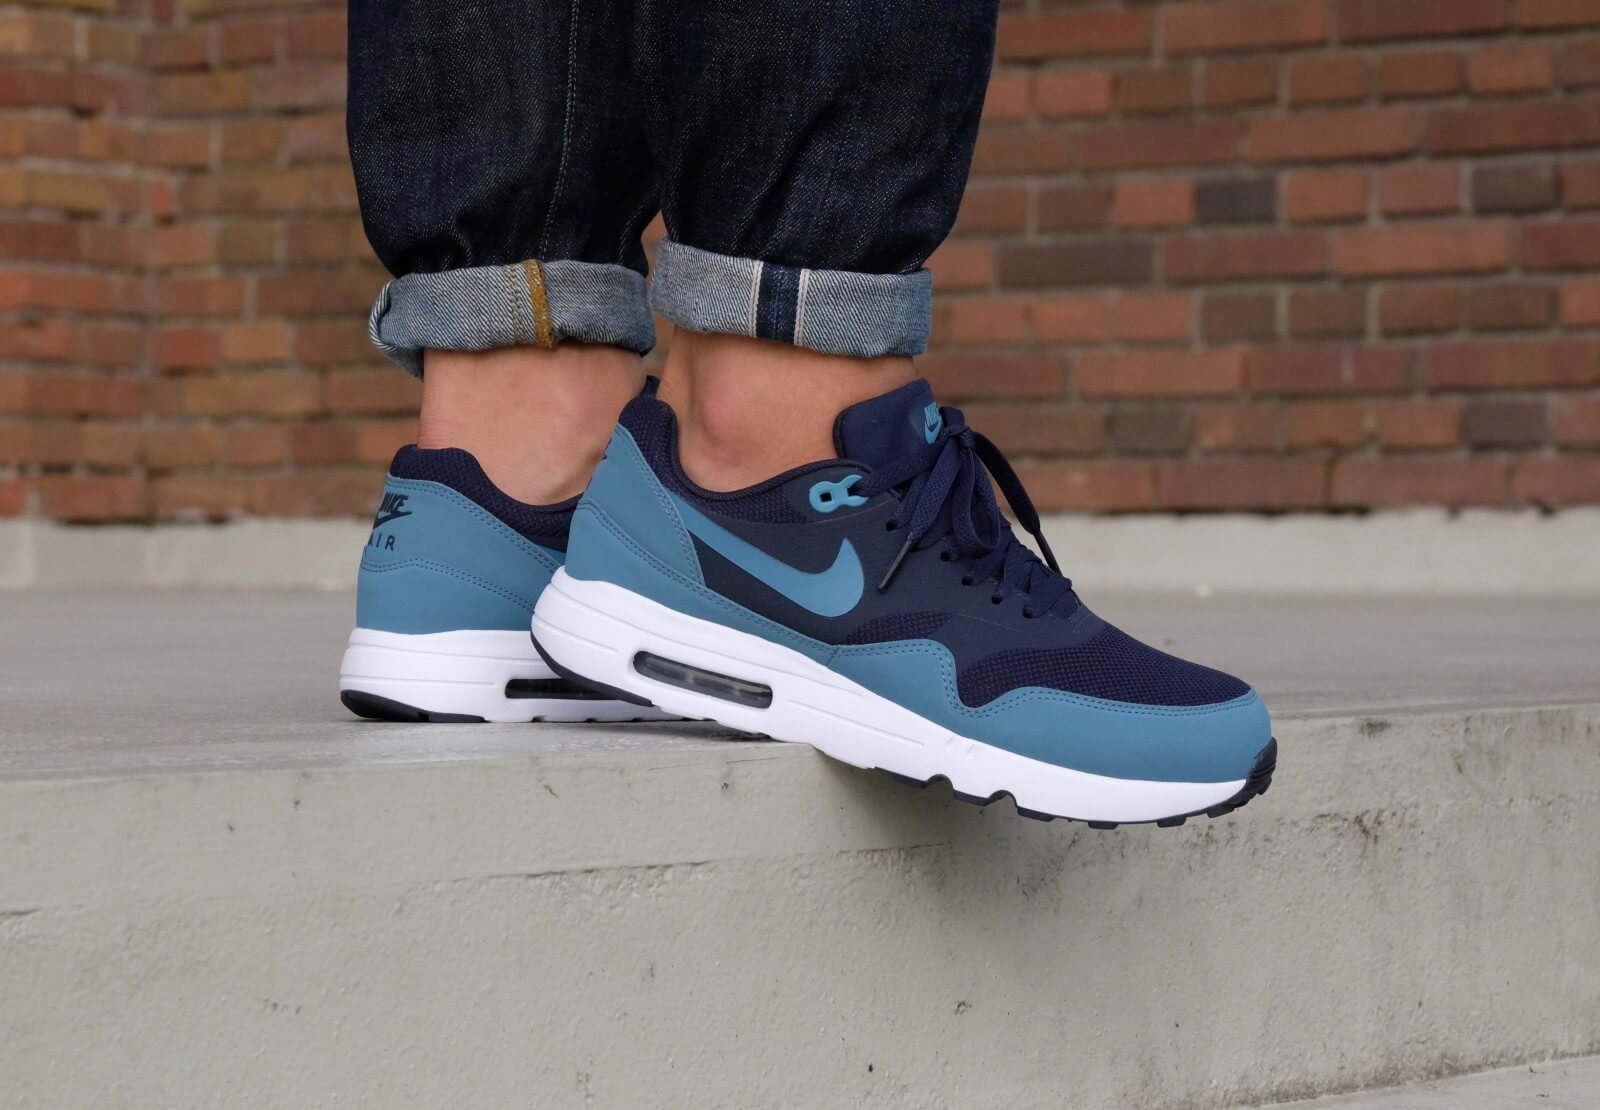 new product b2fc2 25840 ... Nike Air Max 1 Ultra 2.0 Essential ObsidianSmokey Blue-Smokey  Blue-White - 875679 ...